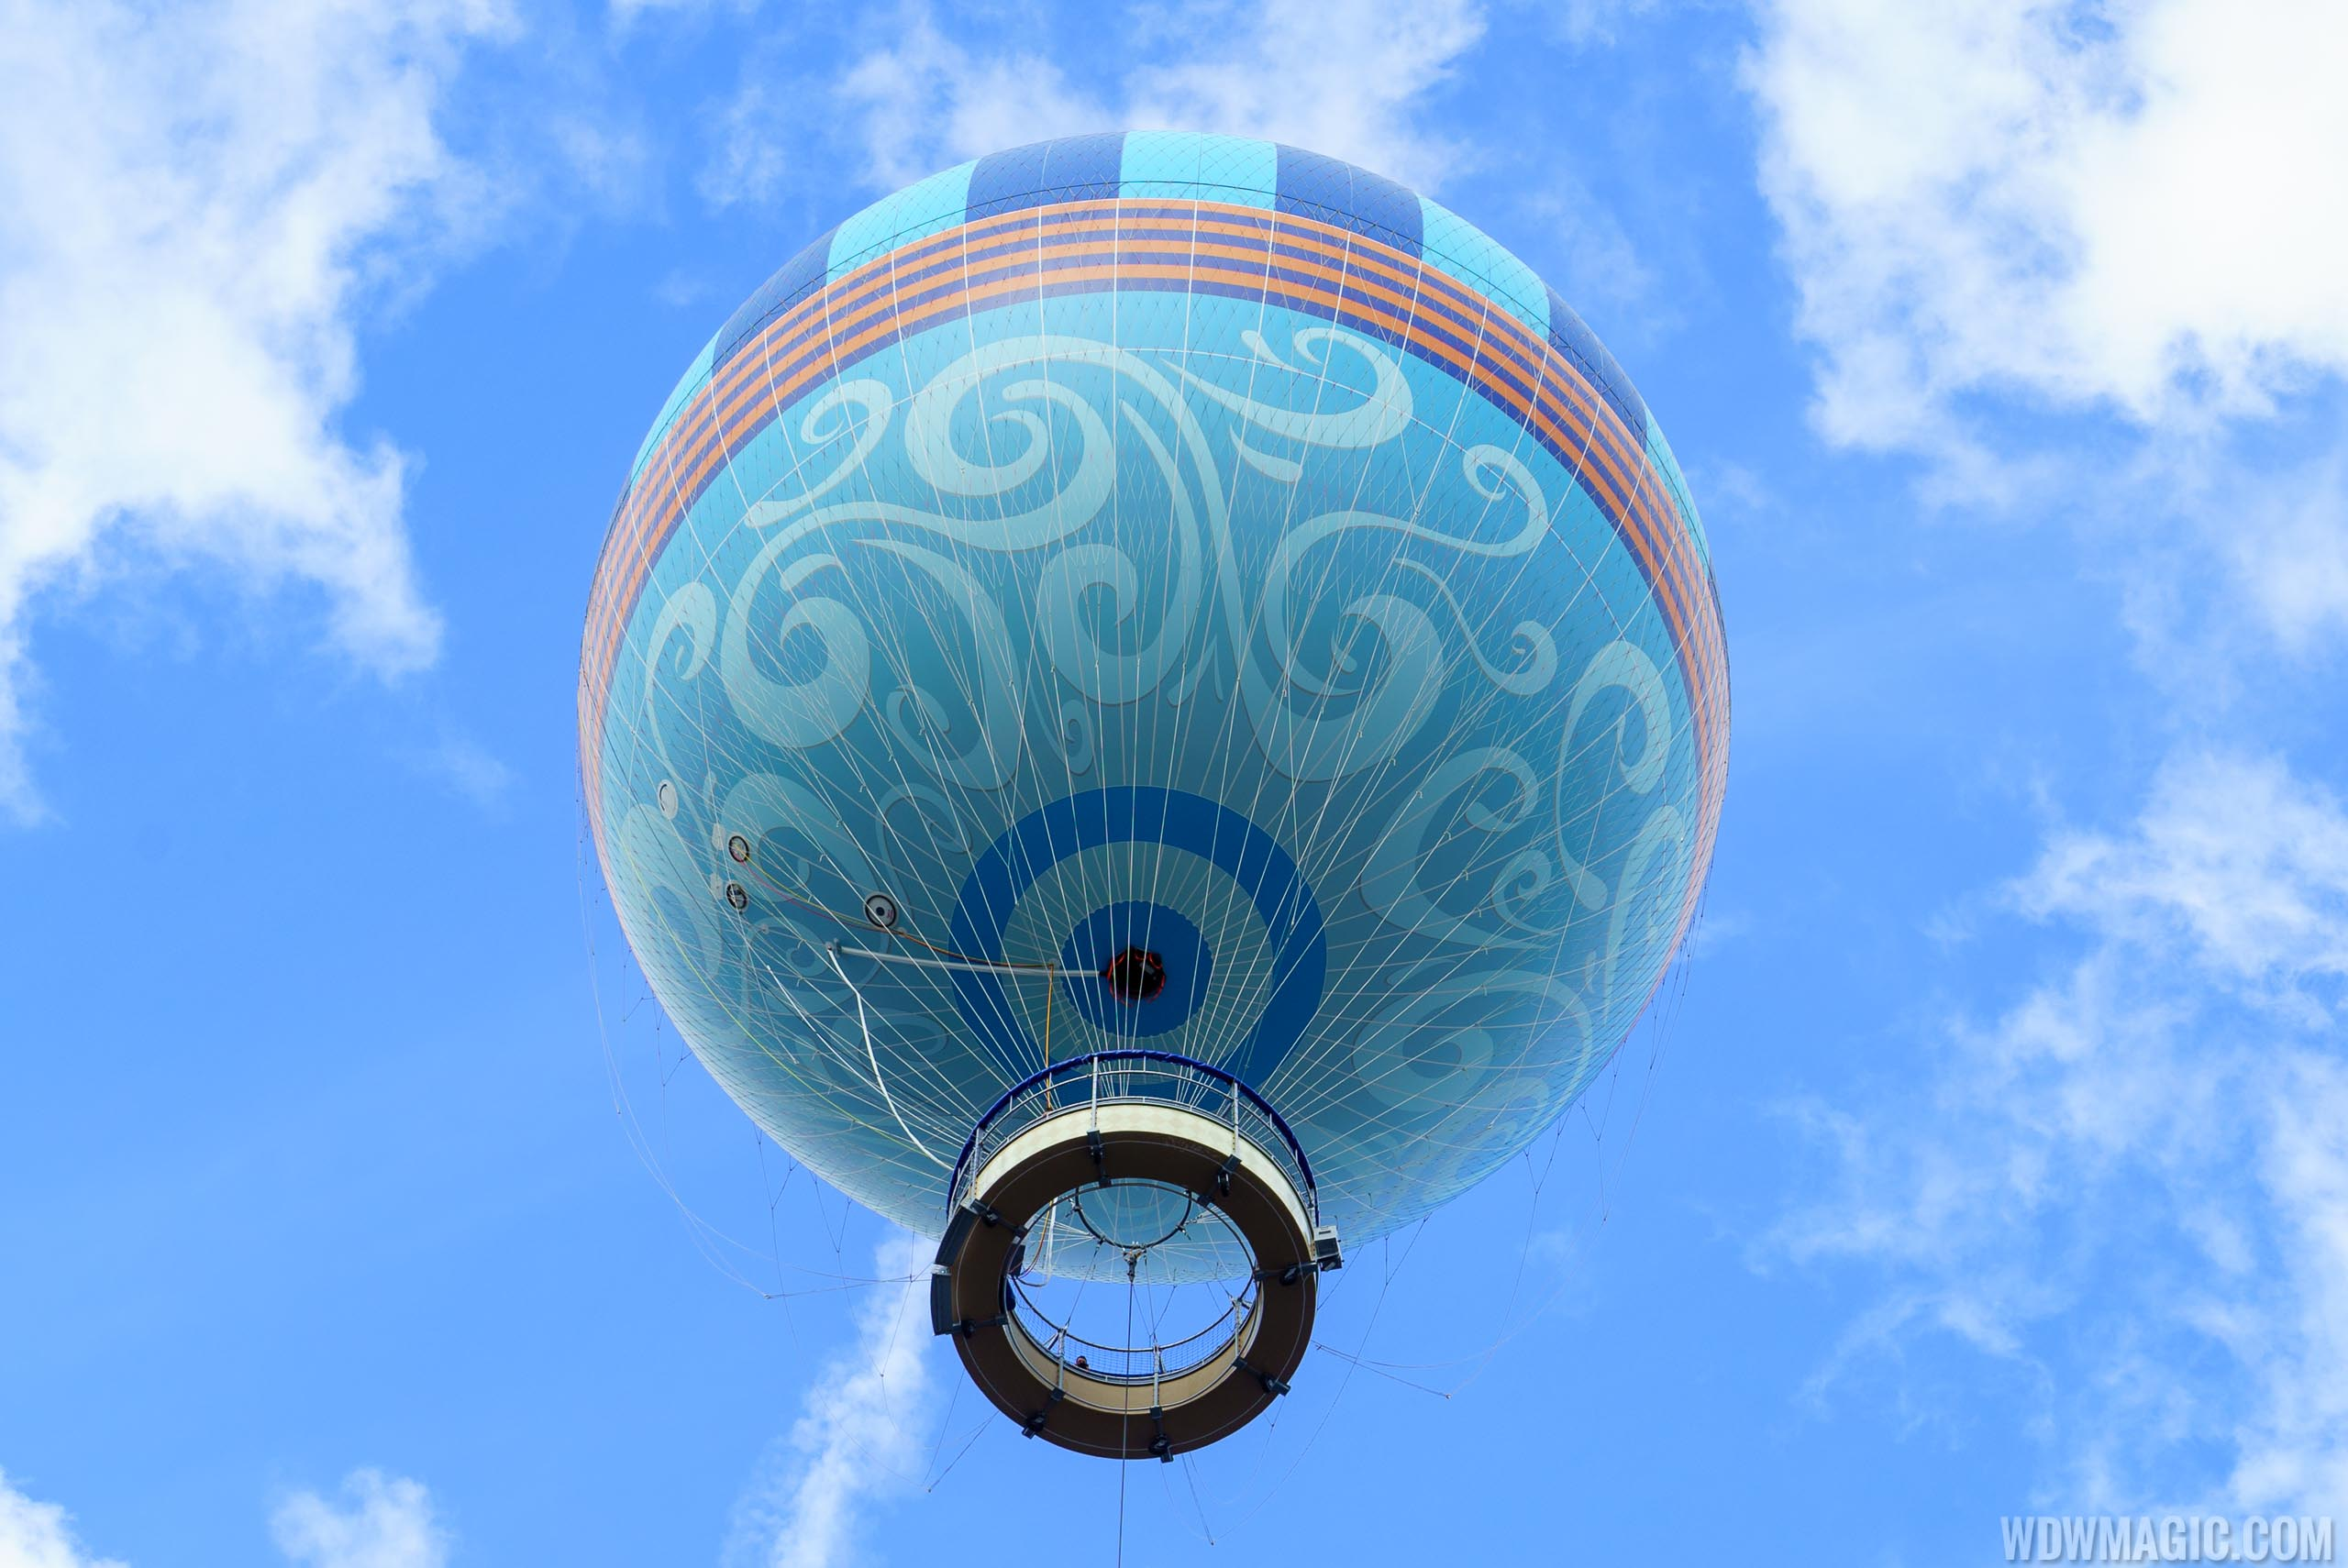 New look Characters in Flight balloon